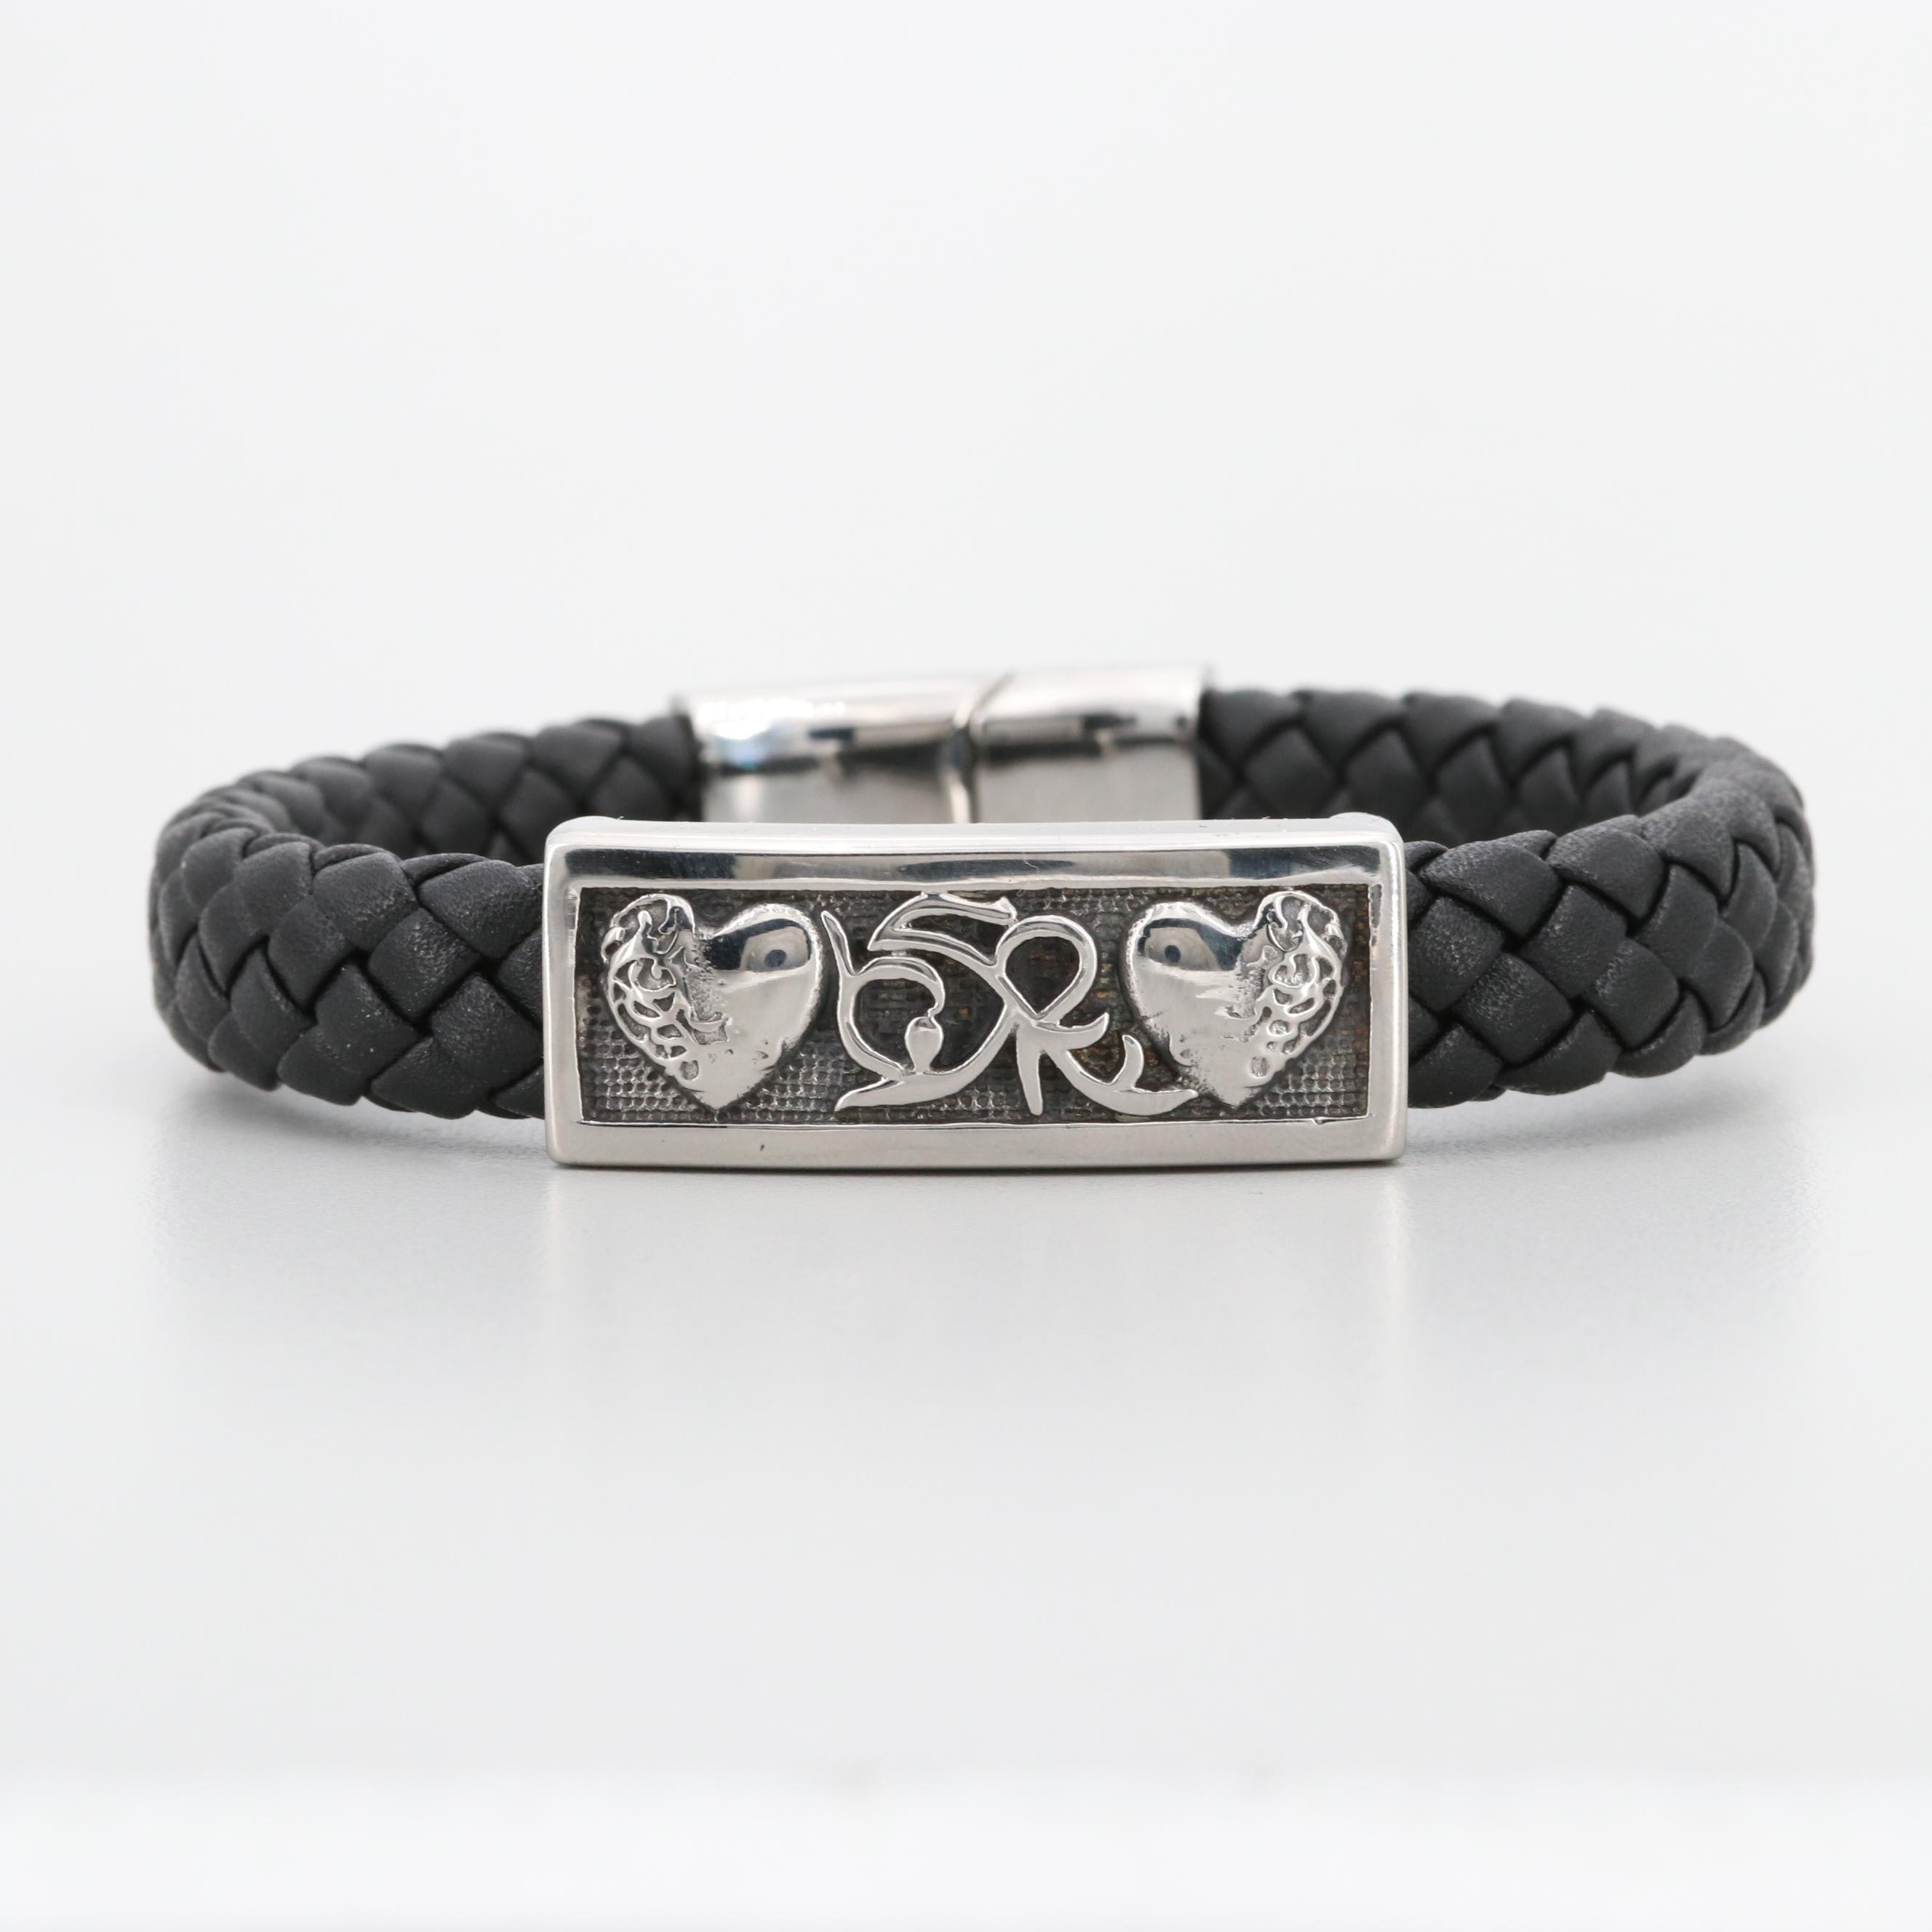 Silver Tone Leather Woven Bracelet